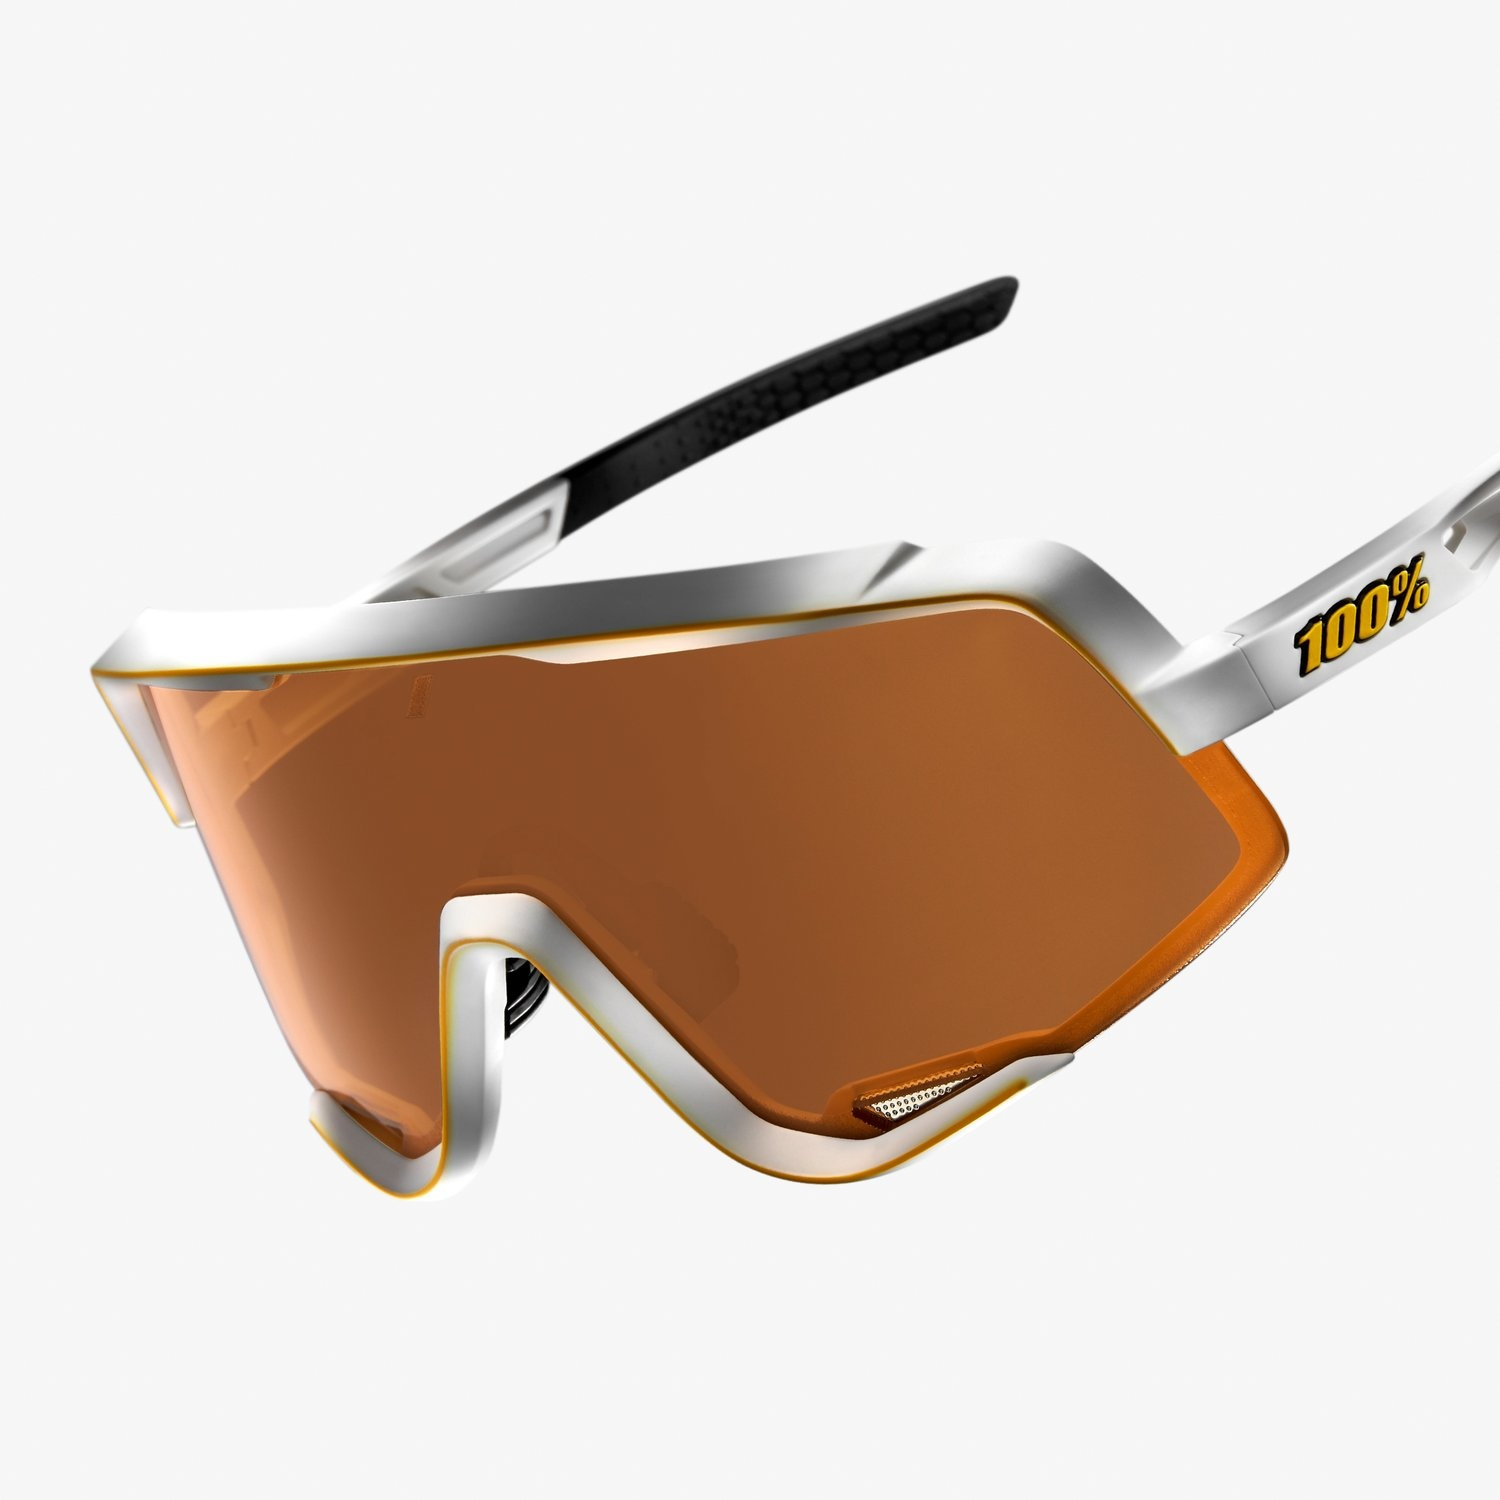 Glendale Soft Tact Off White Persimmon Lens-3